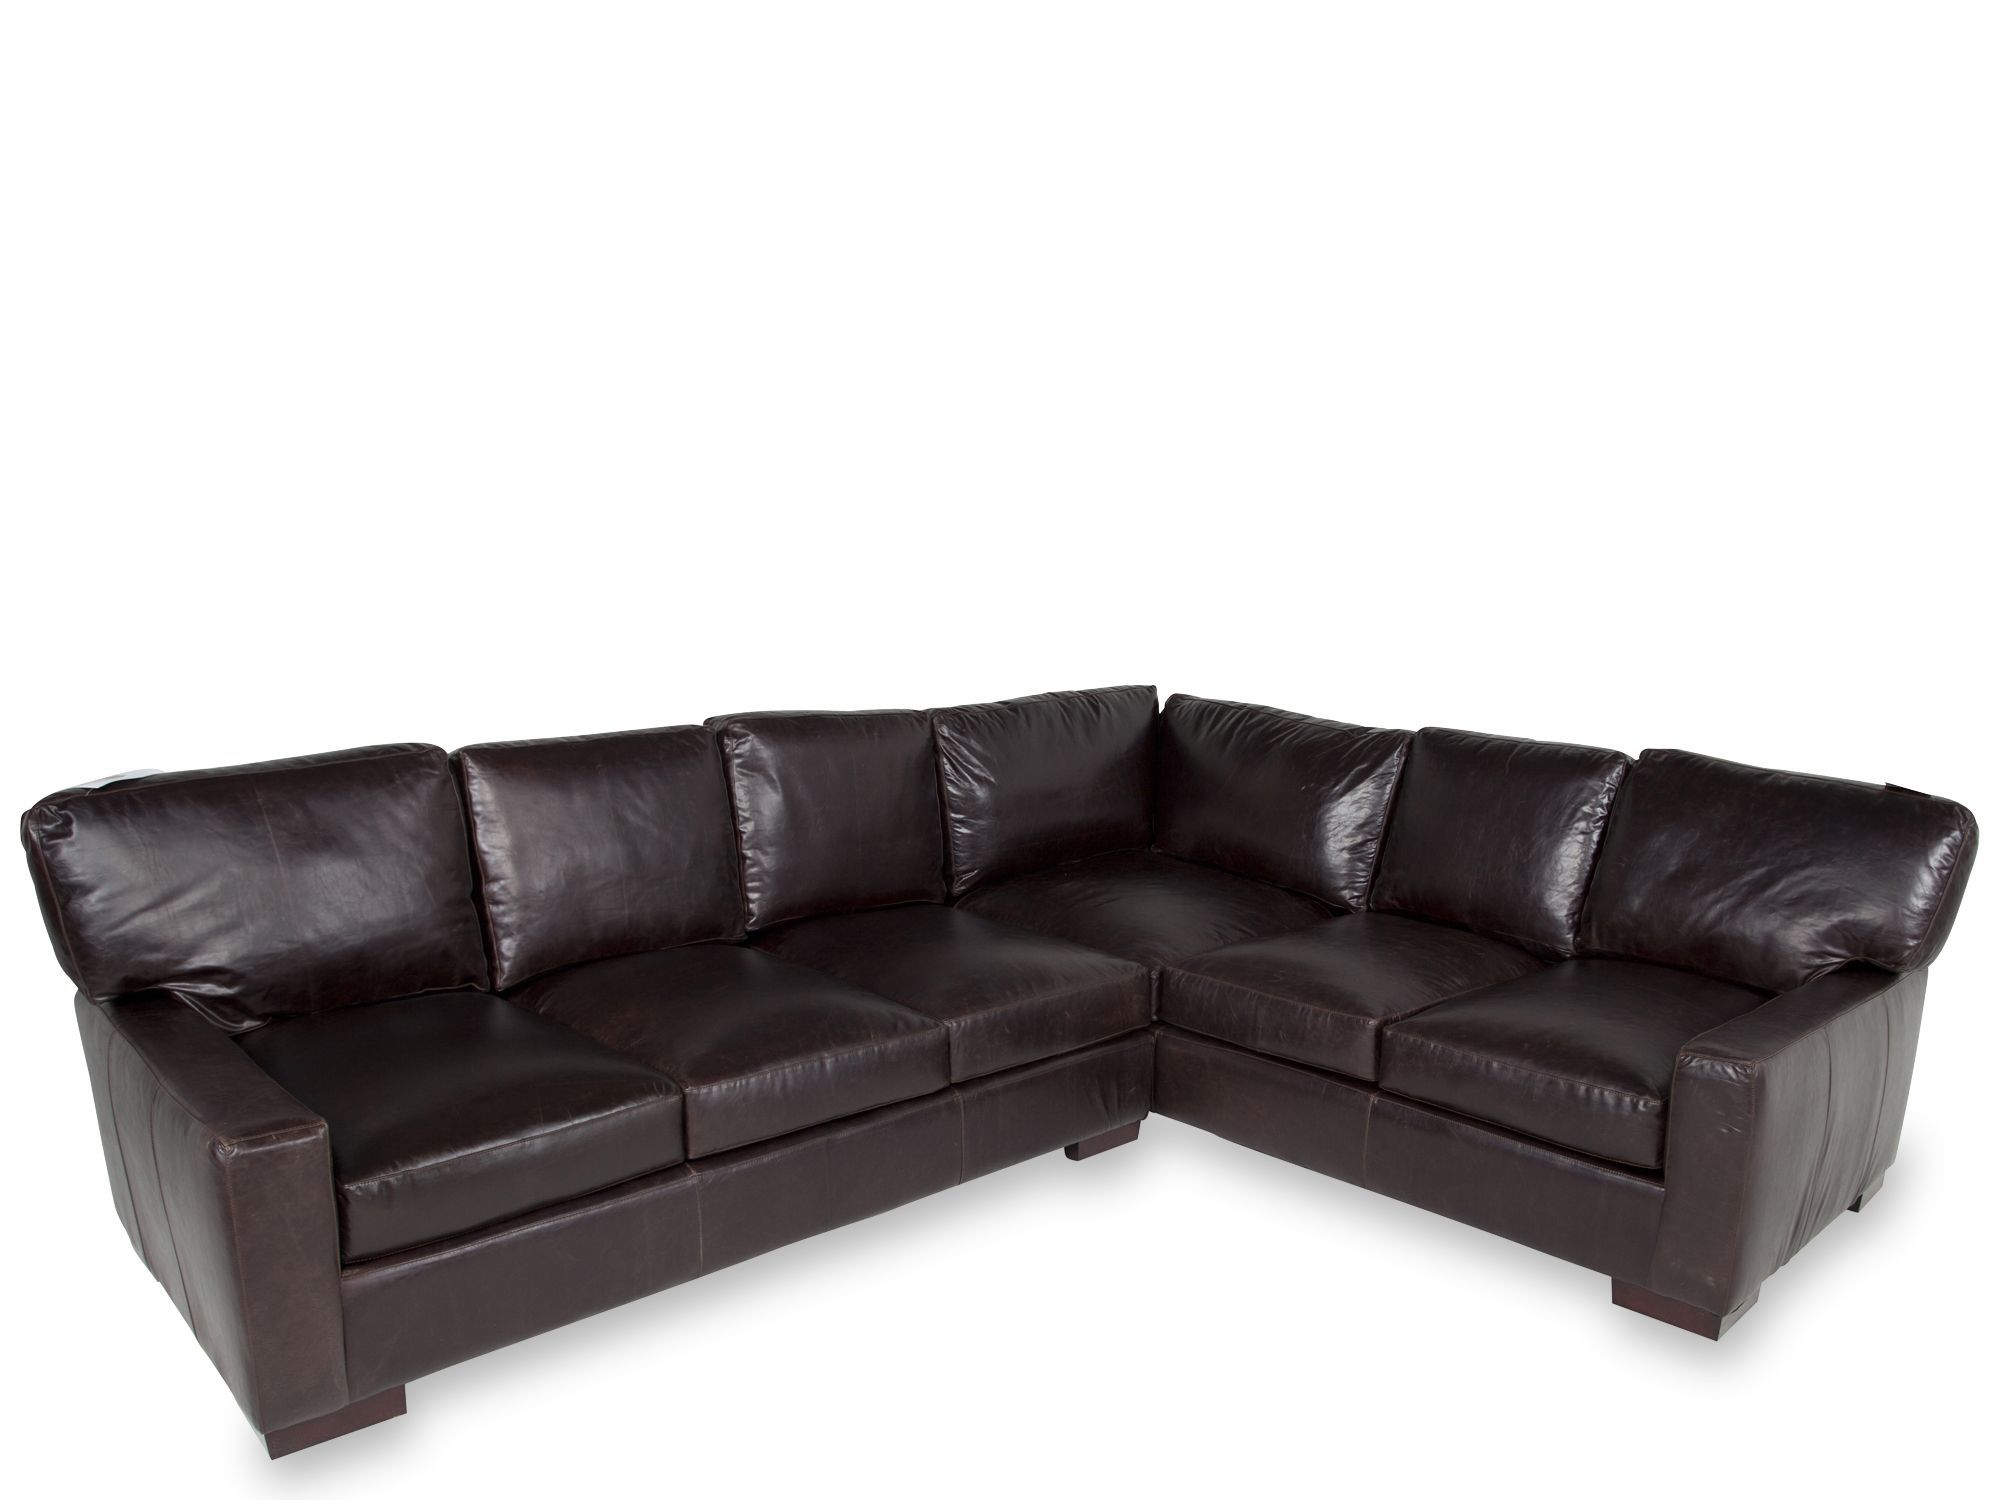 USA Tobacco 2 Piece Leather Sectional  sc 1 st  Pinterest : usa sectionals - Sectionals, Sofas & Couches